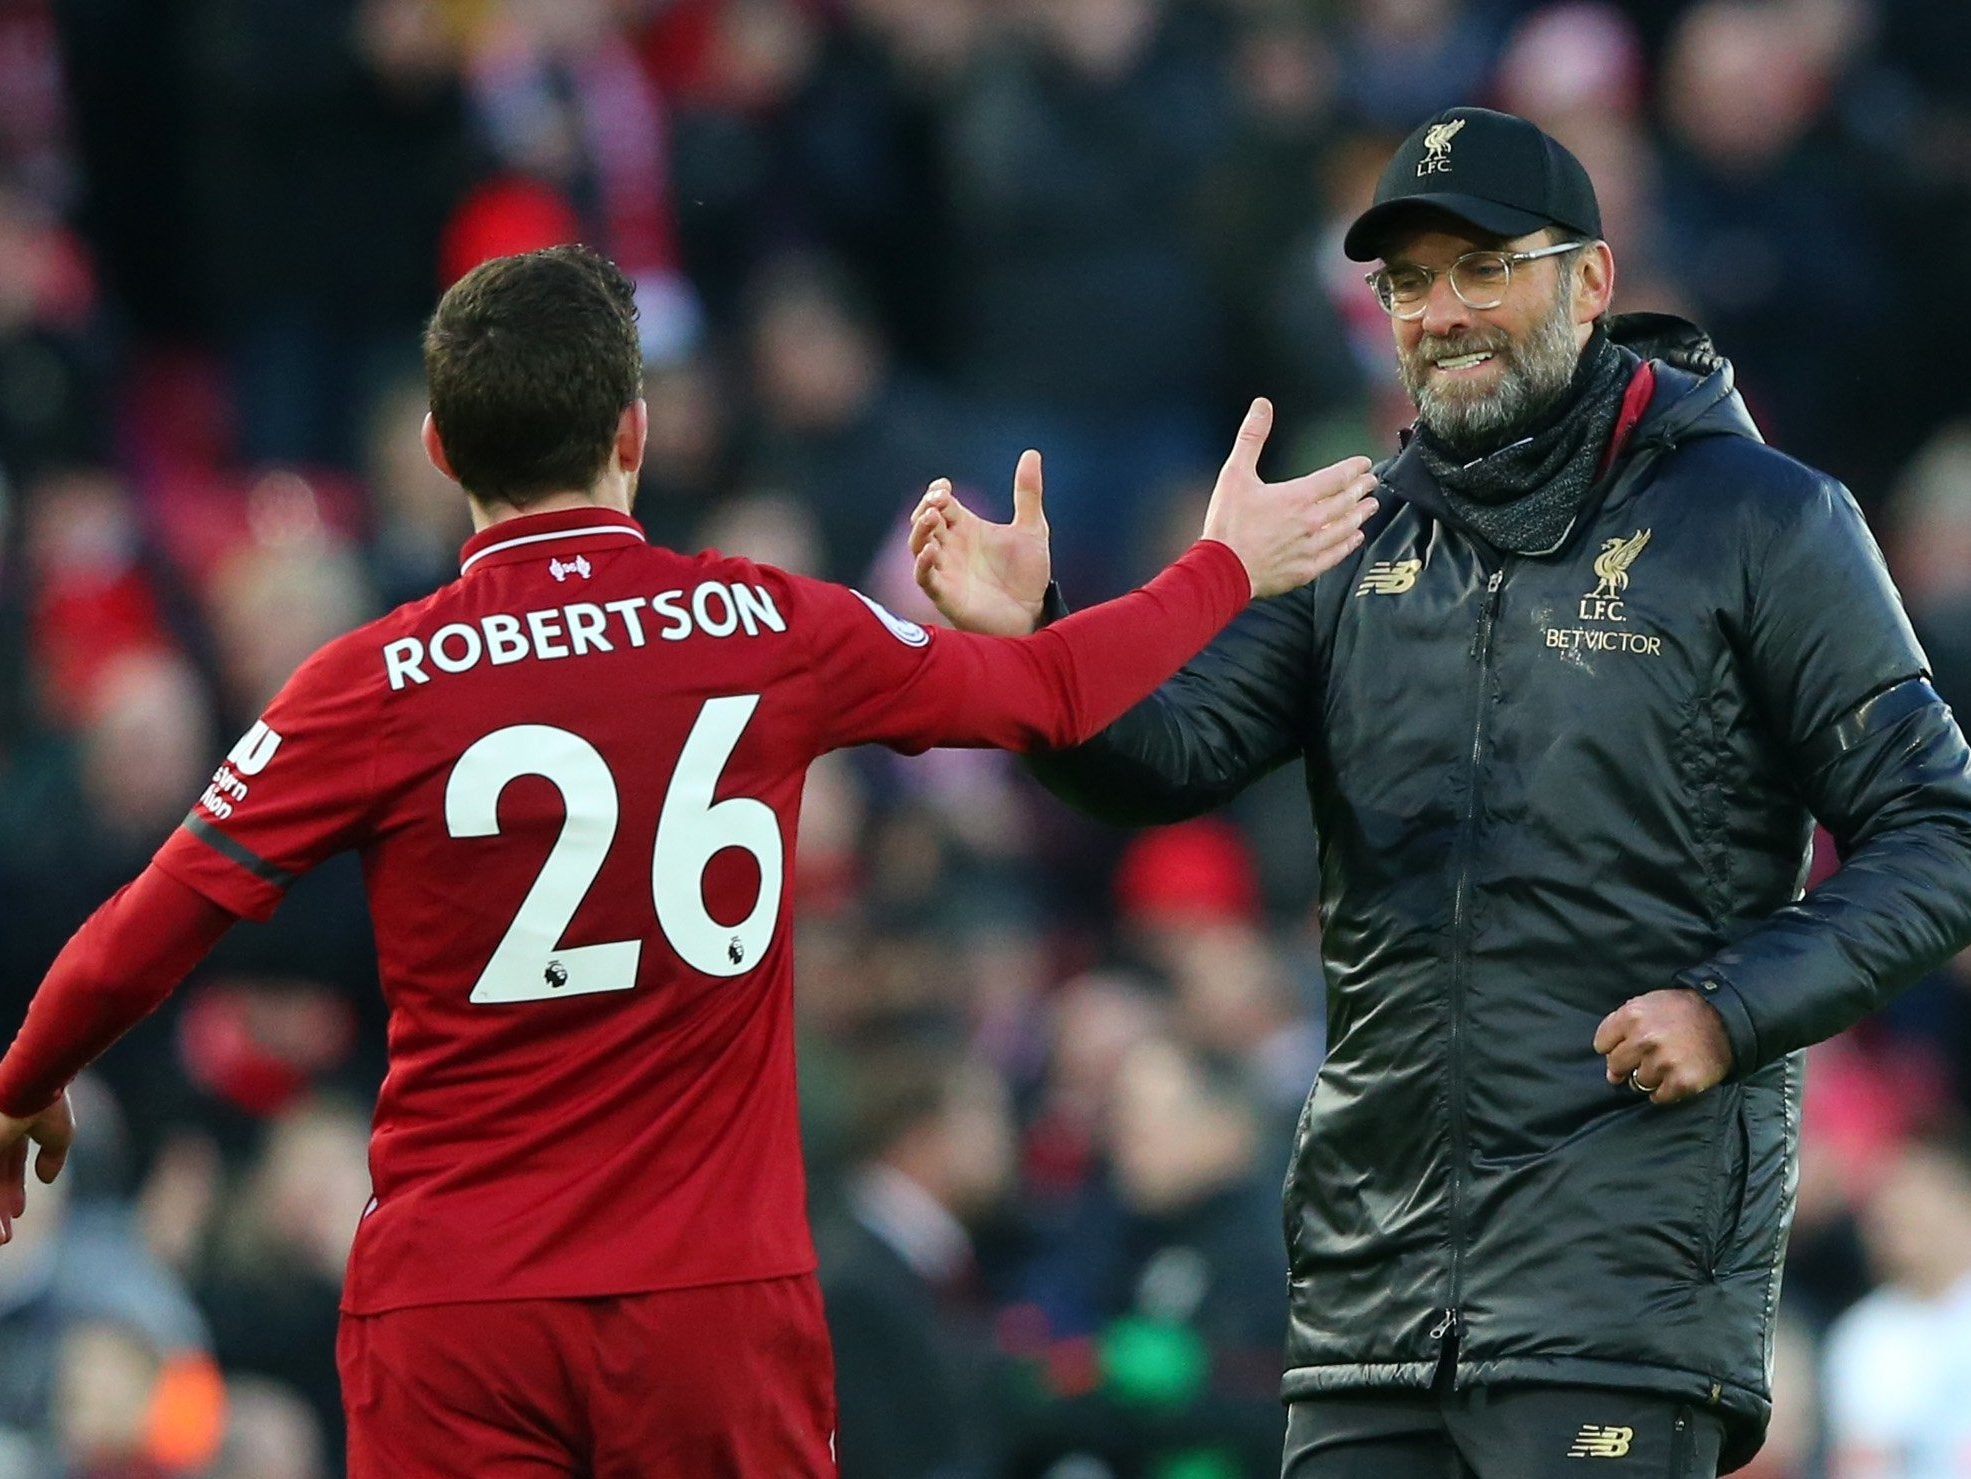 Liverpool news: Andrew Robertson laughs off talk Jurgen Klopp is feeling the pressure of the title race